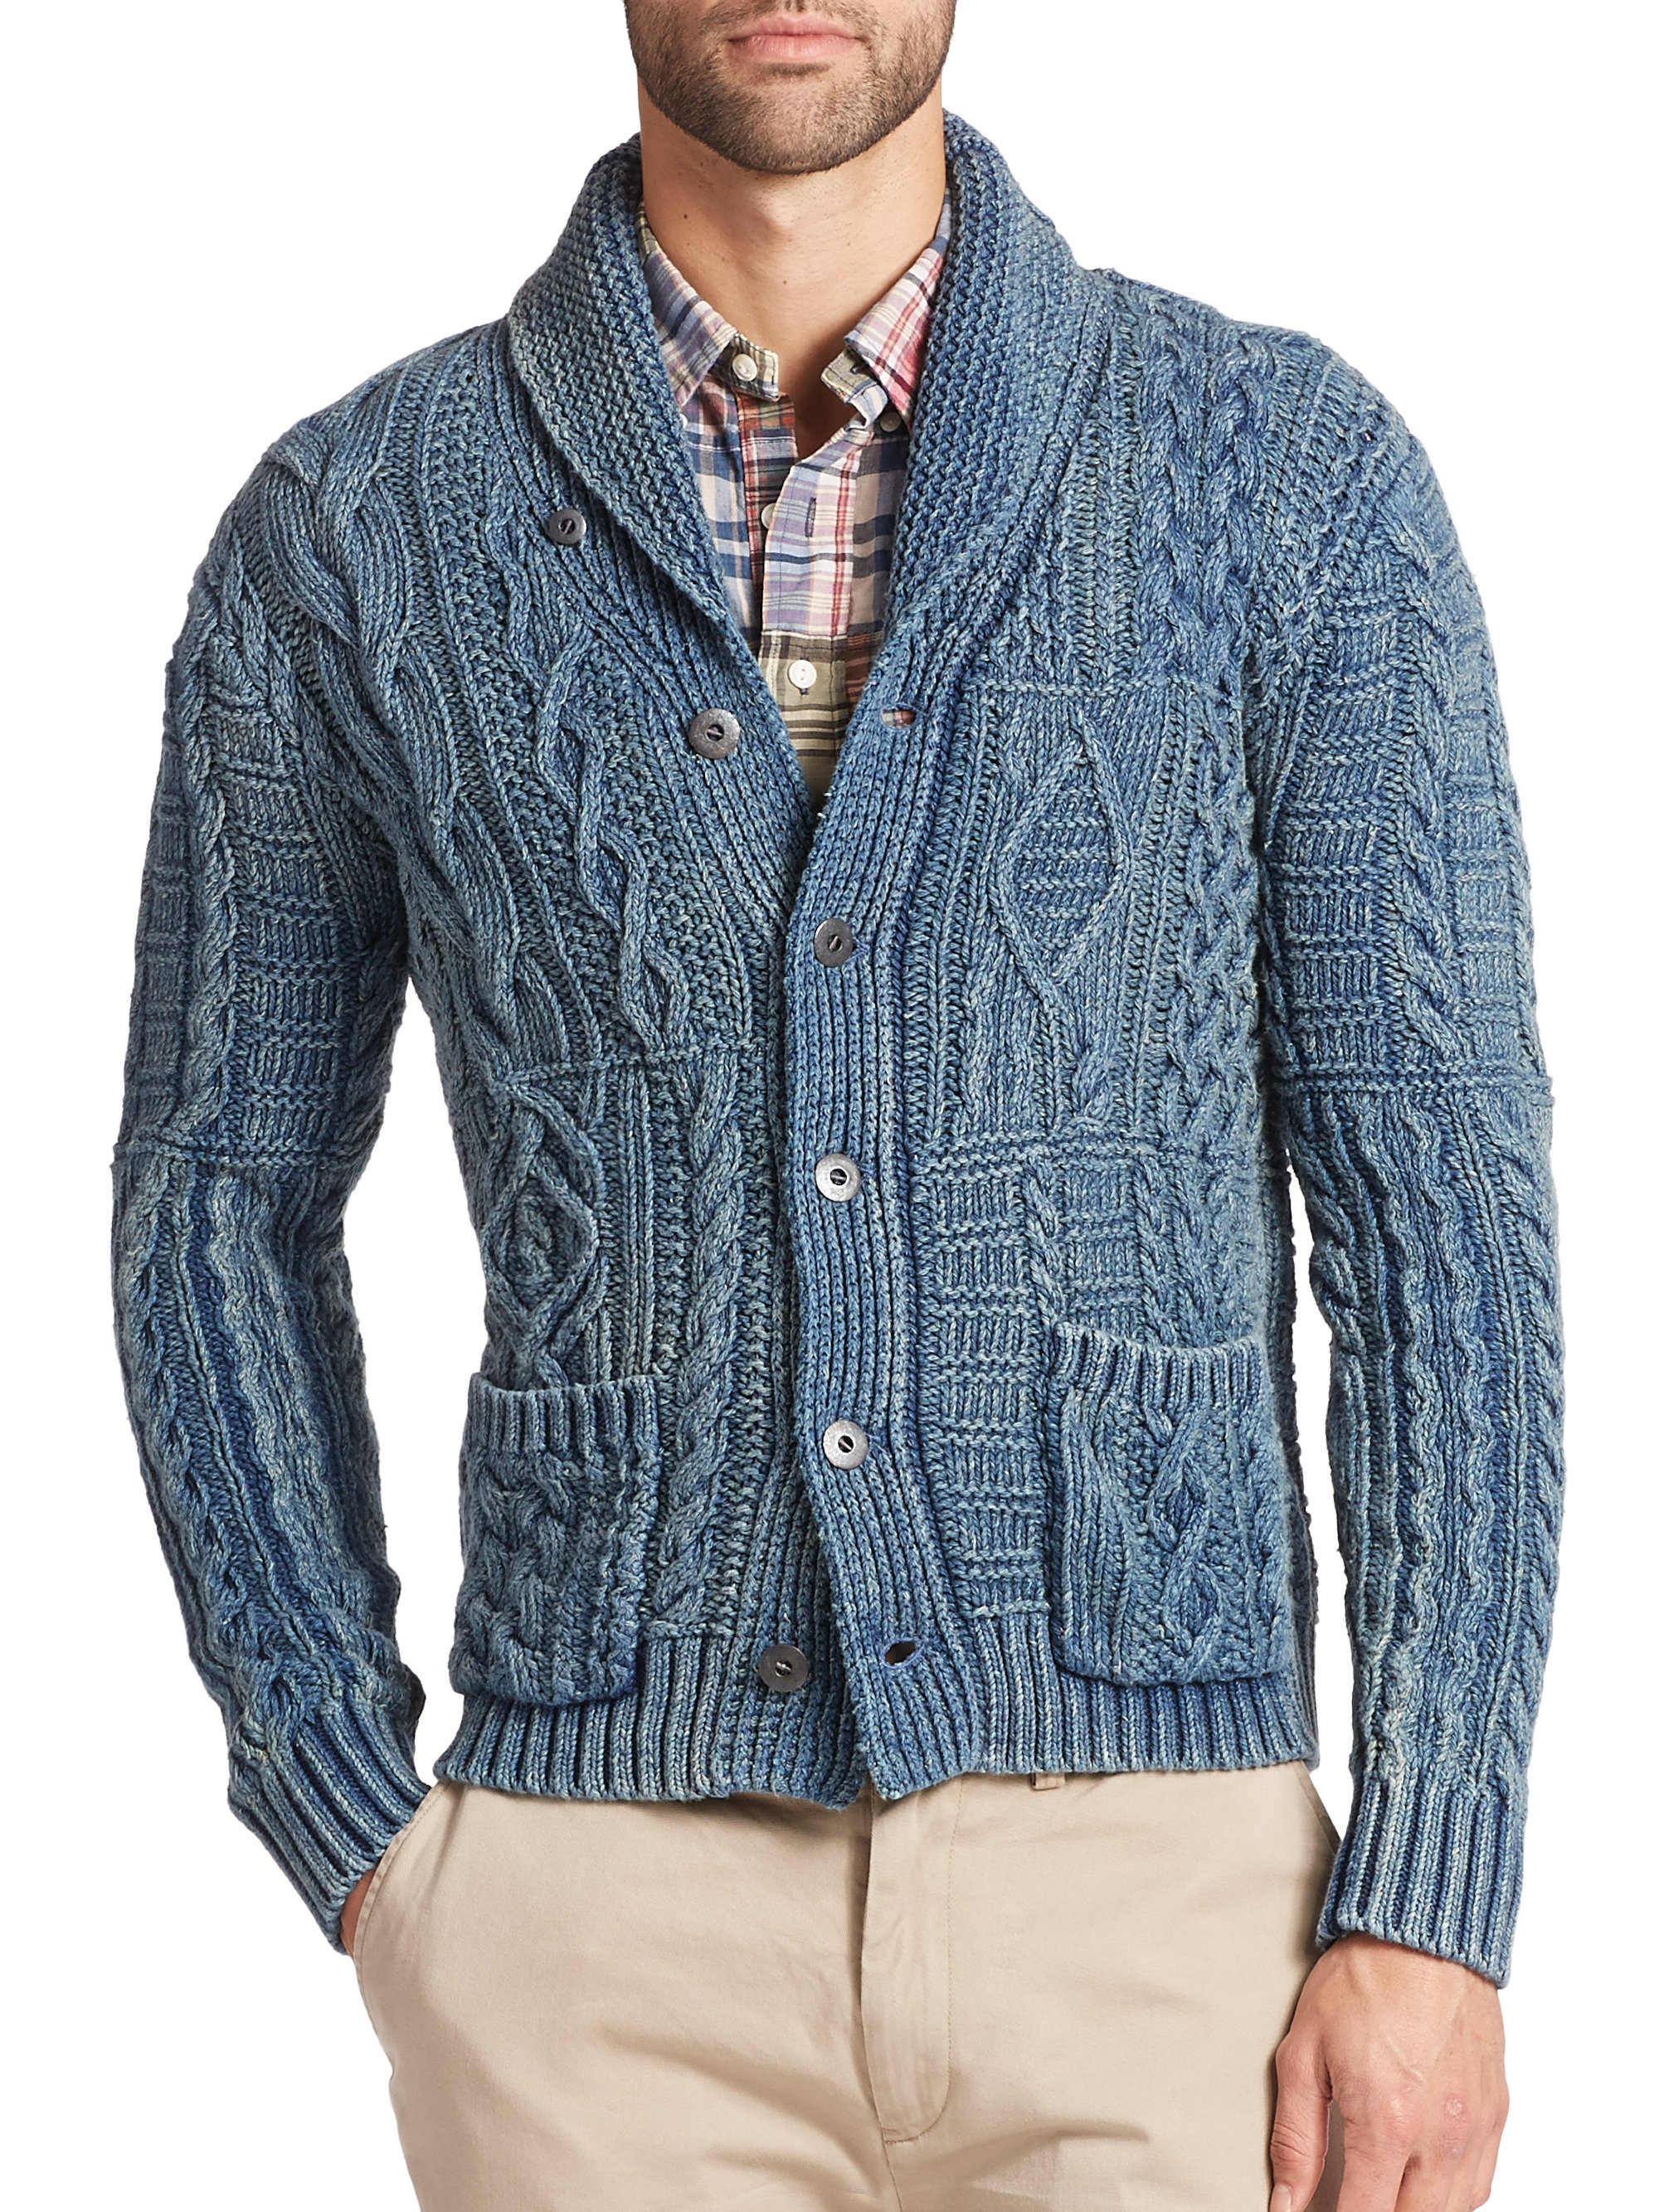 Polo ralph lauren Cable-knit Shawl Cardigan in Green for Men | Lyst